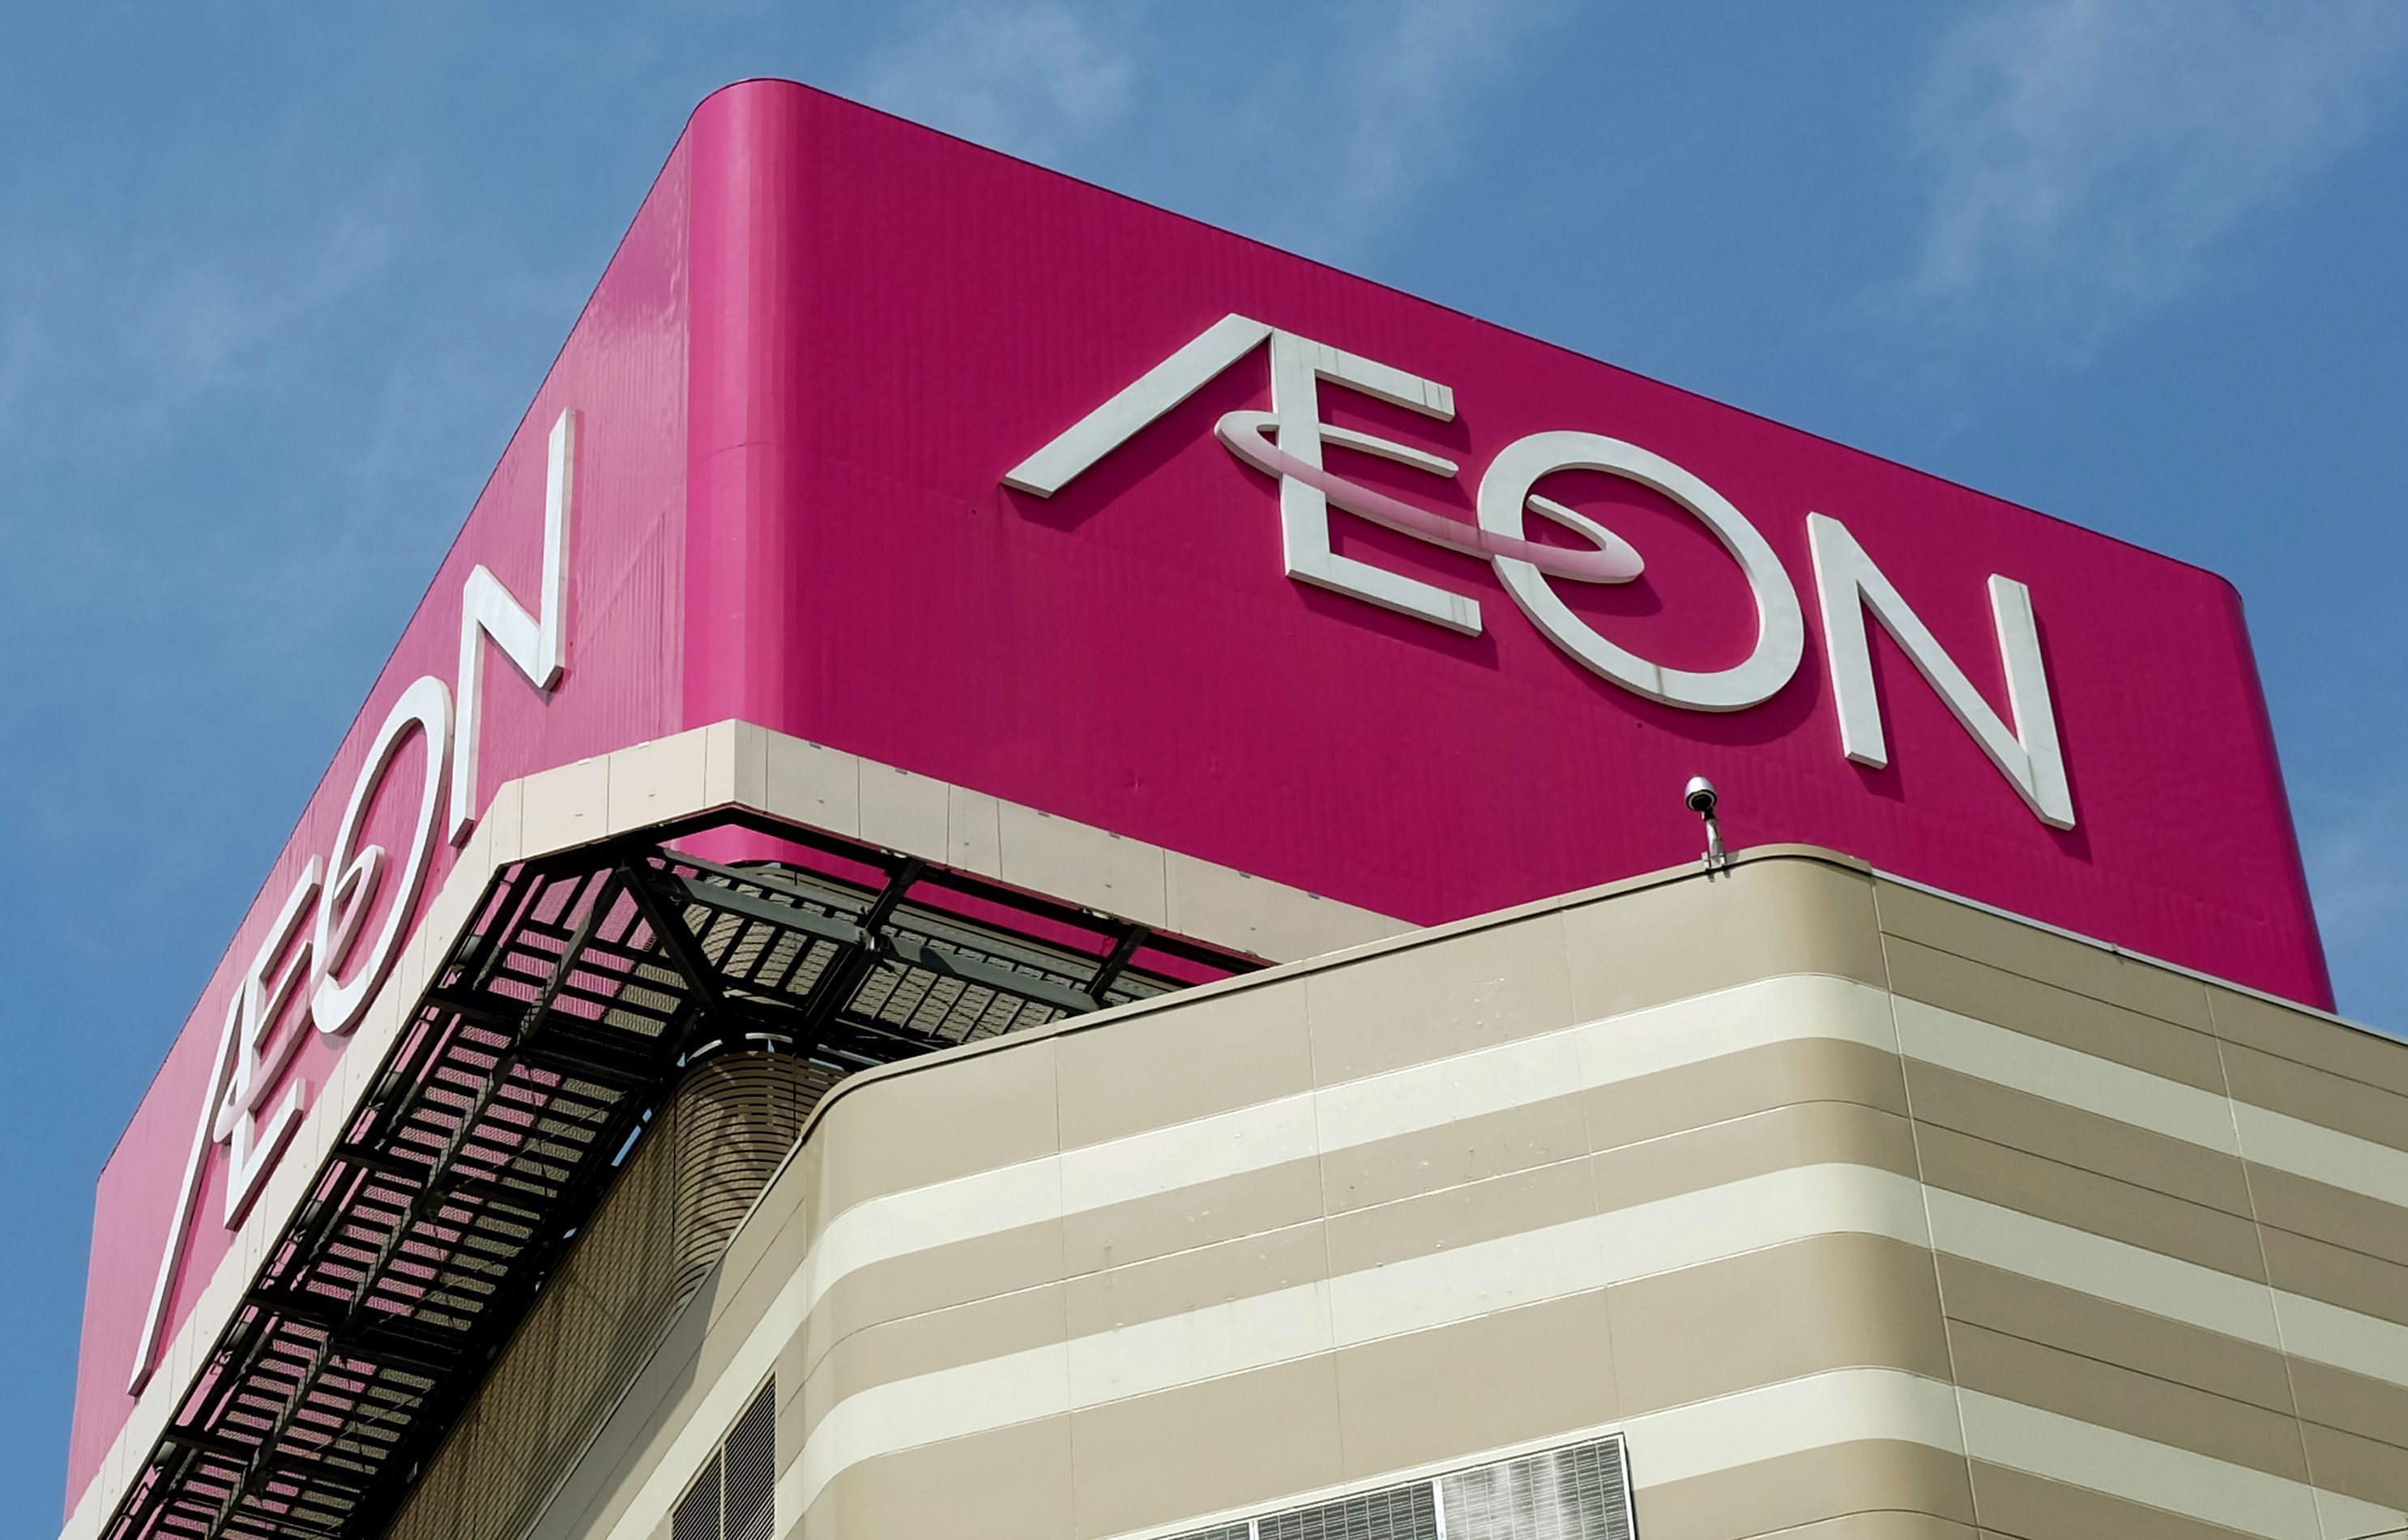 aeon co Retail giant aeon co has renovated 13 outlets across the country to cater to  seniors, offering earlier opening hours and services that.